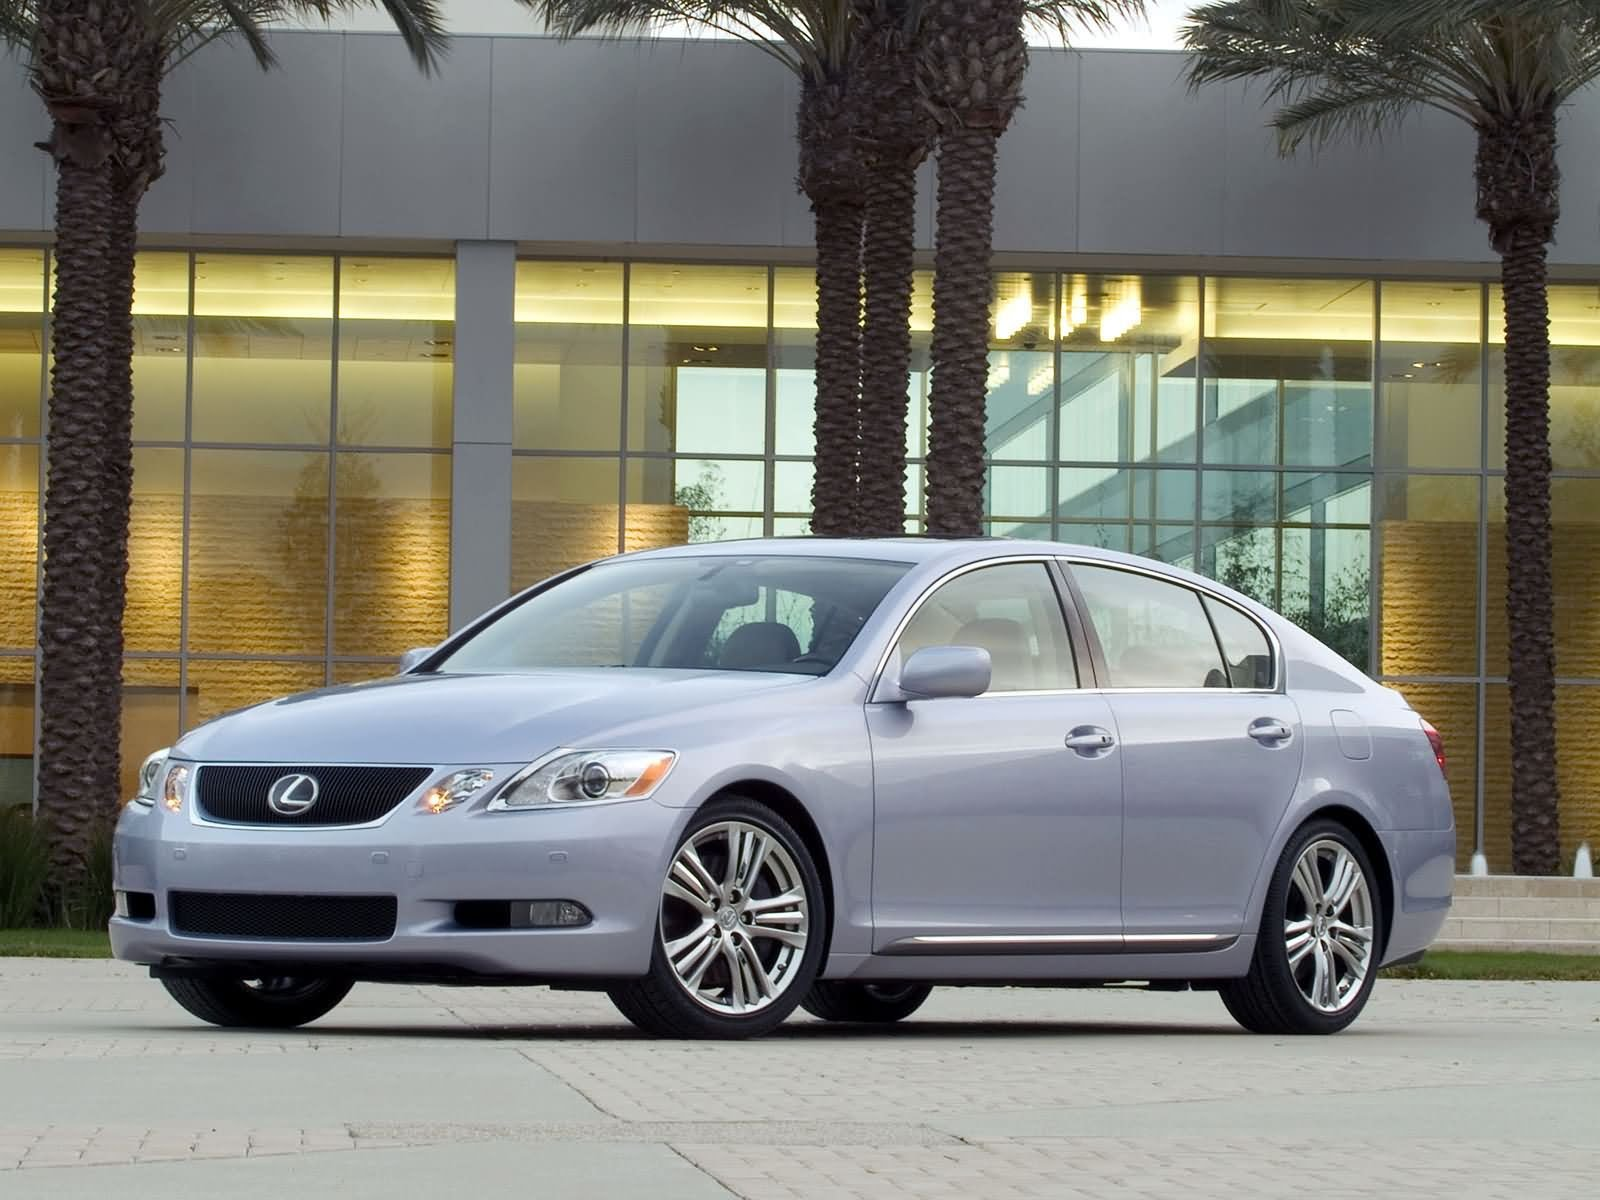 2006 lexus gs 450h picture 88001 car review top speed. Black Bedroom Furniture Sets. Home Design Ideas